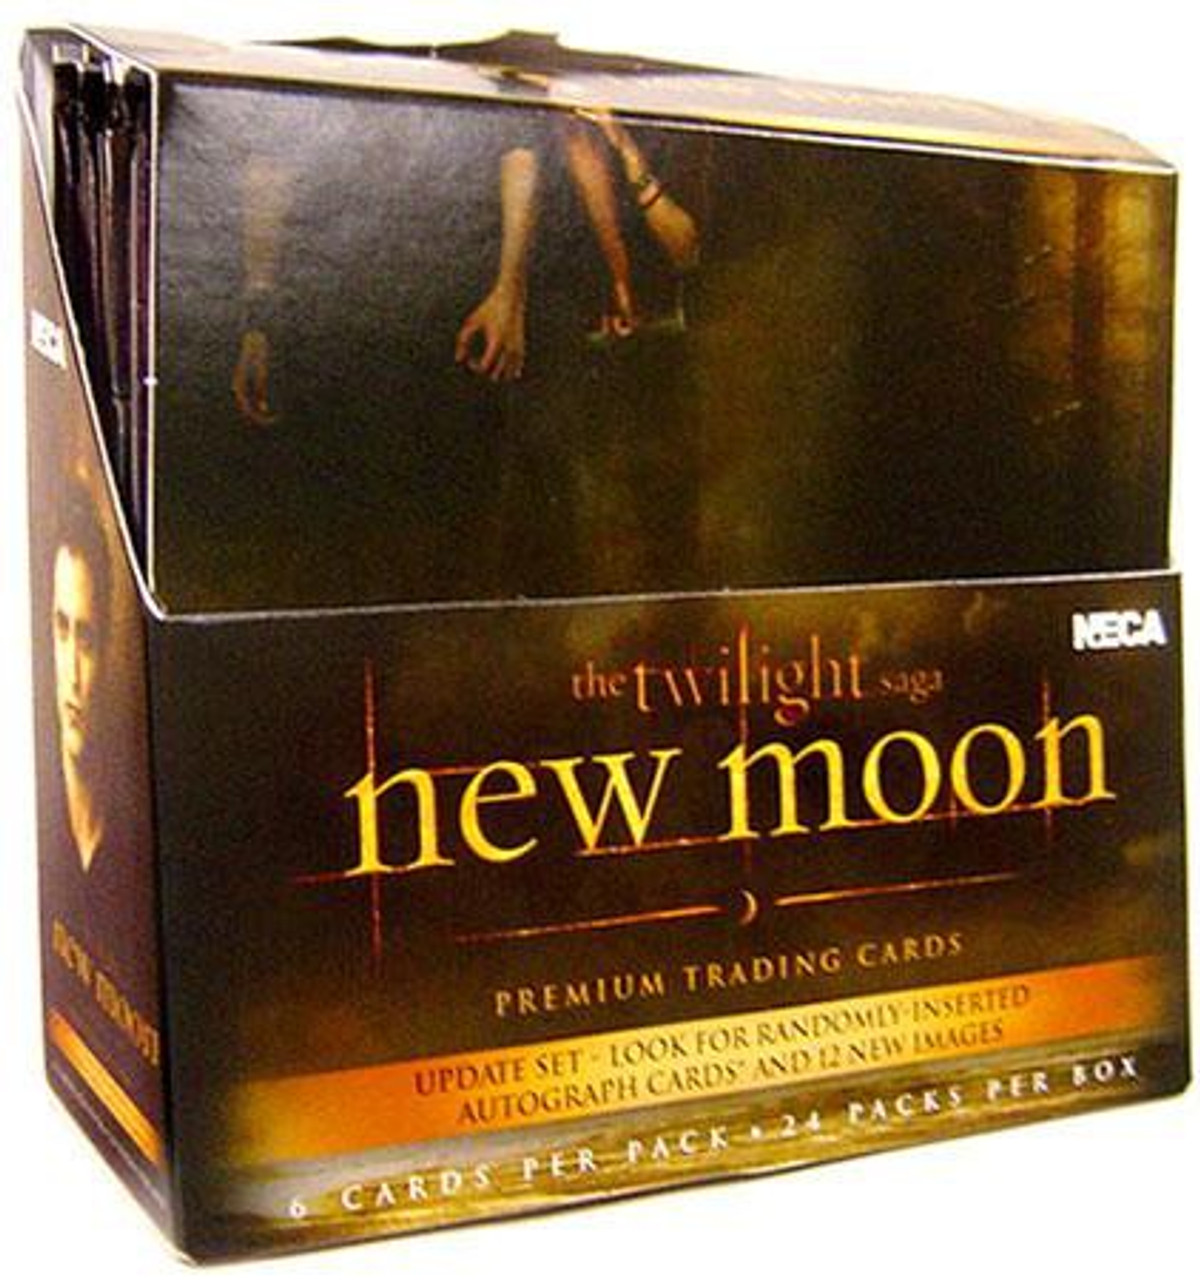 NECA Twilight New Moon Update Edition Trading Card Box